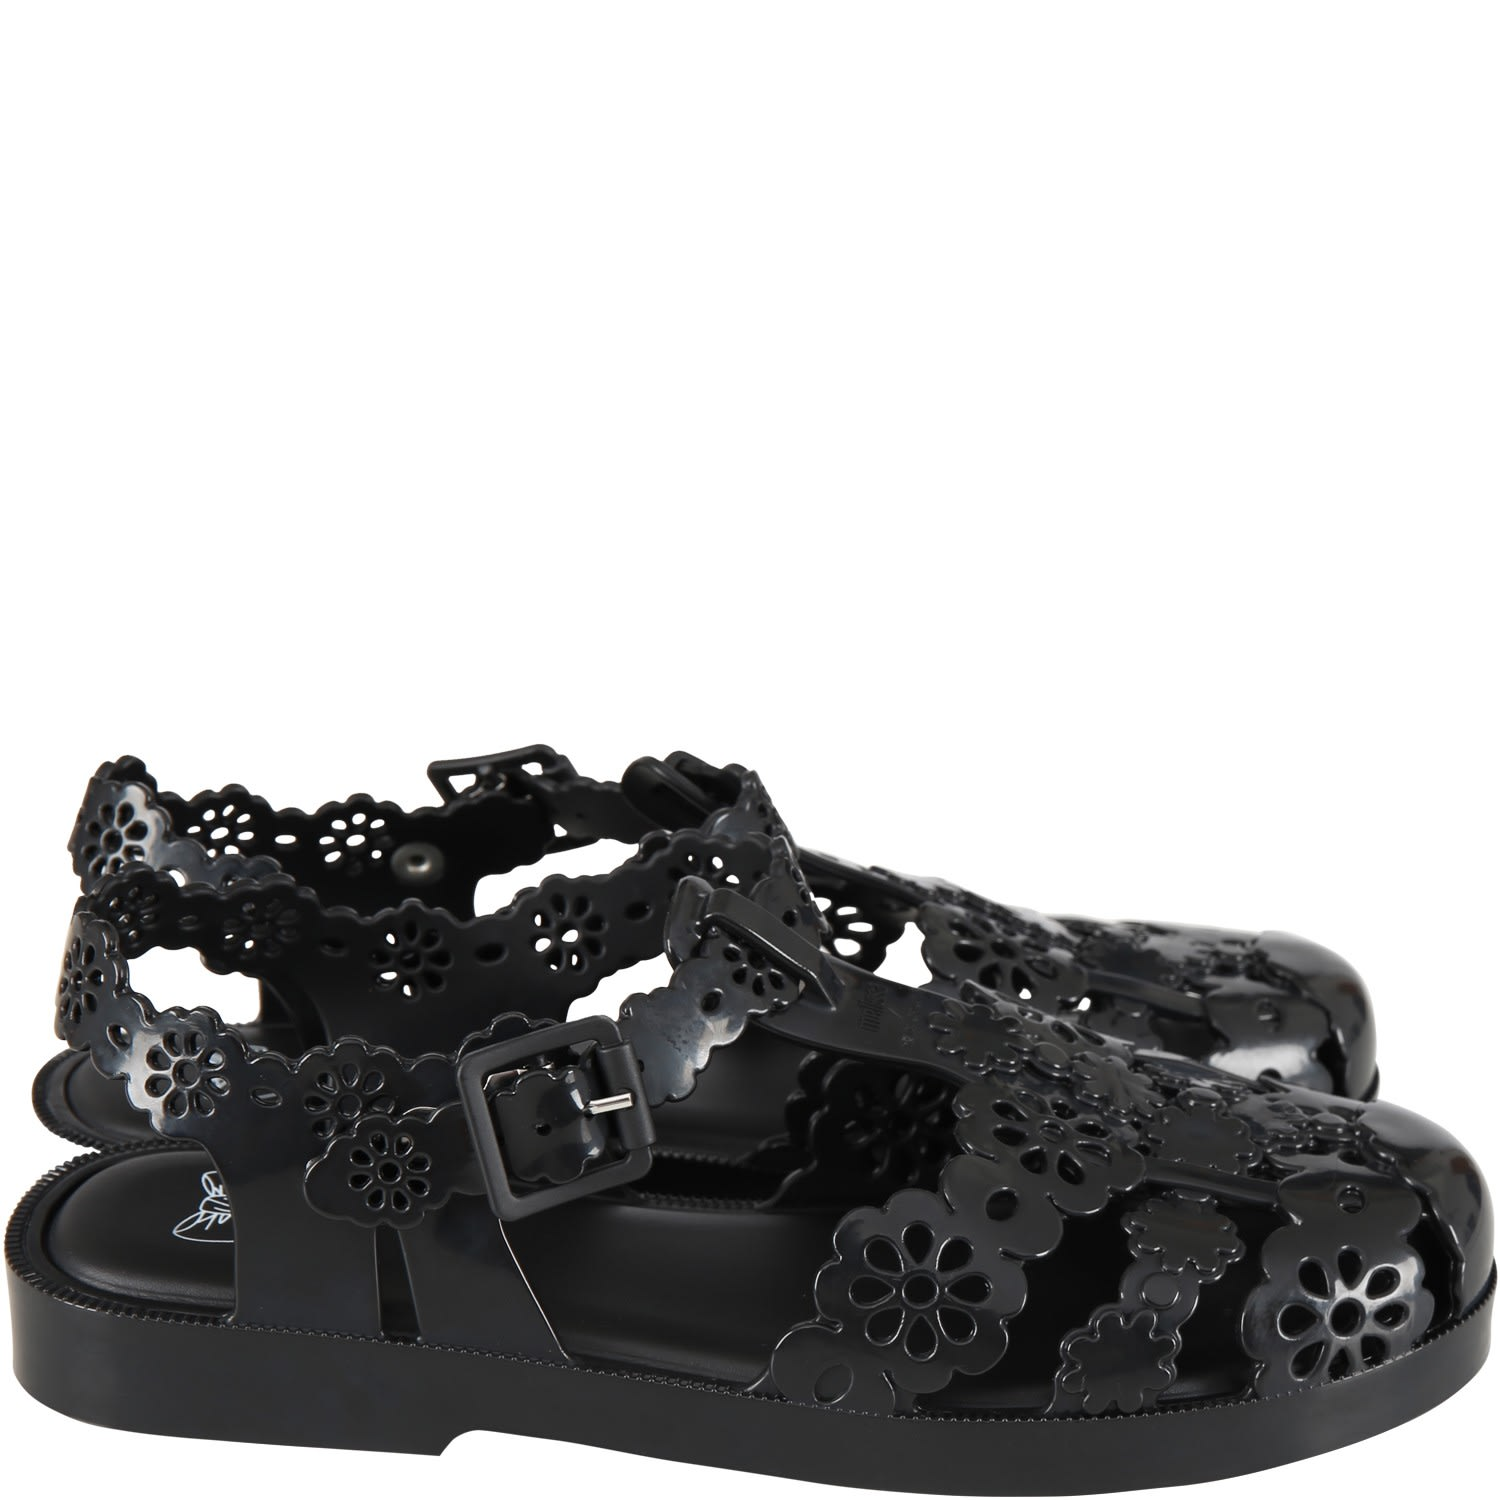 Black Spider Shoes For Woman